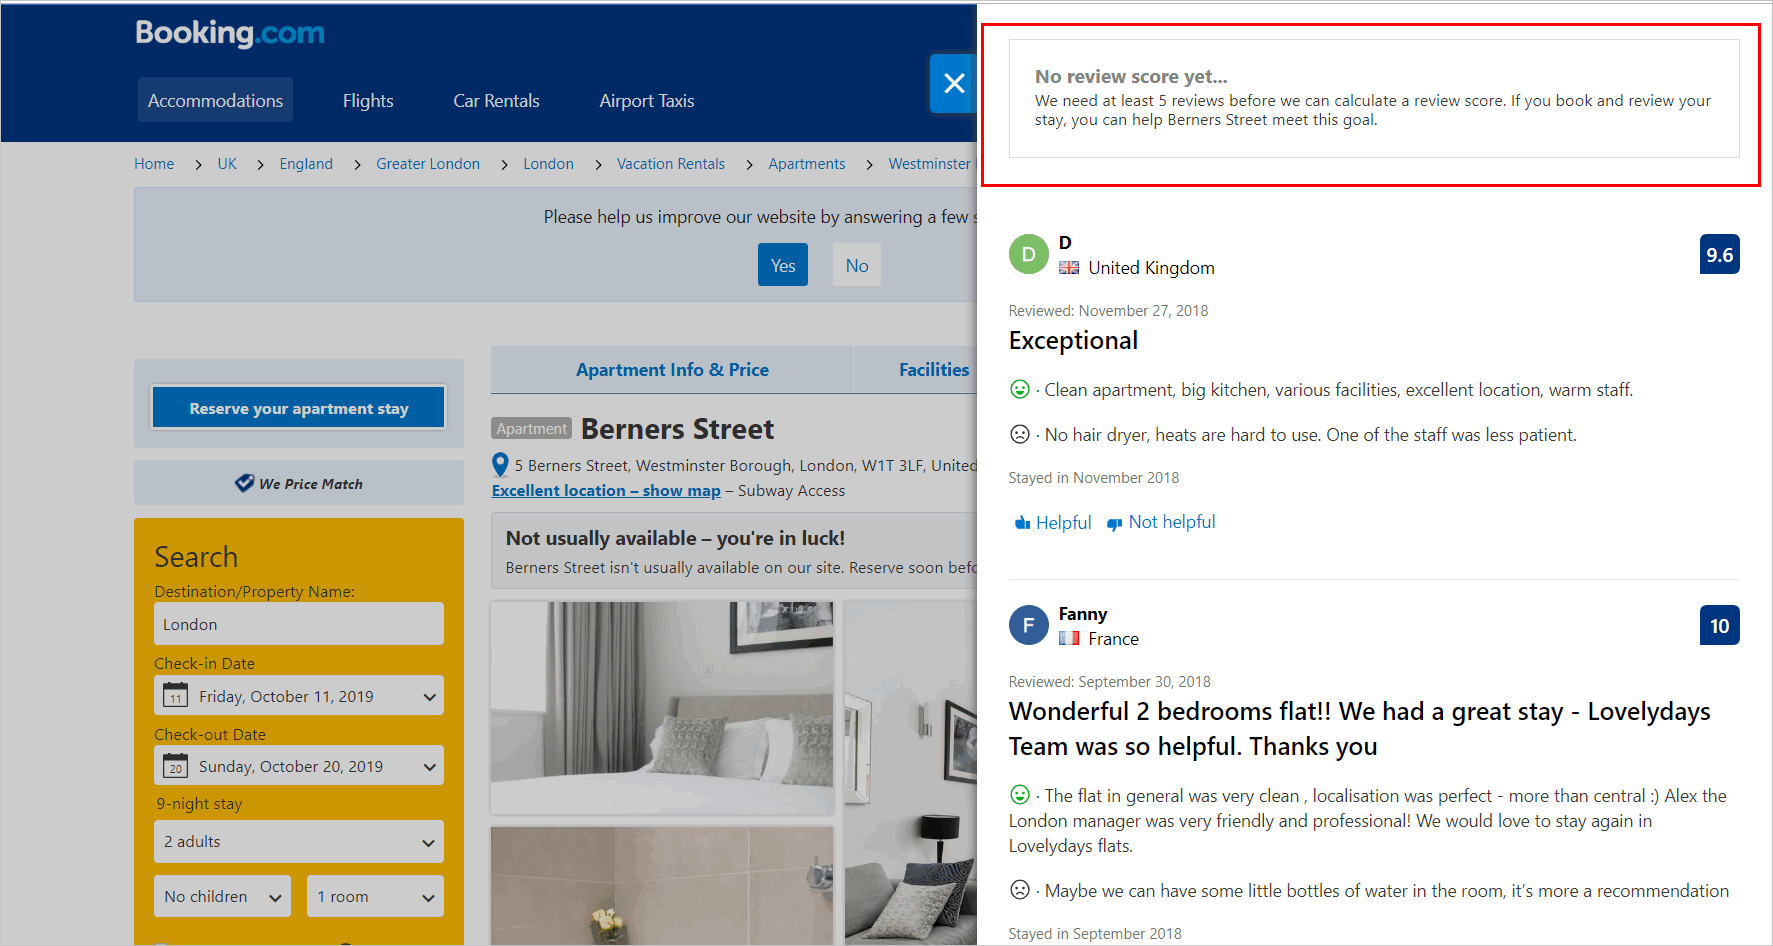 Booking.com's property detail page with message informing the user that the site does not display an average score unless the property has at least 5 reviews.